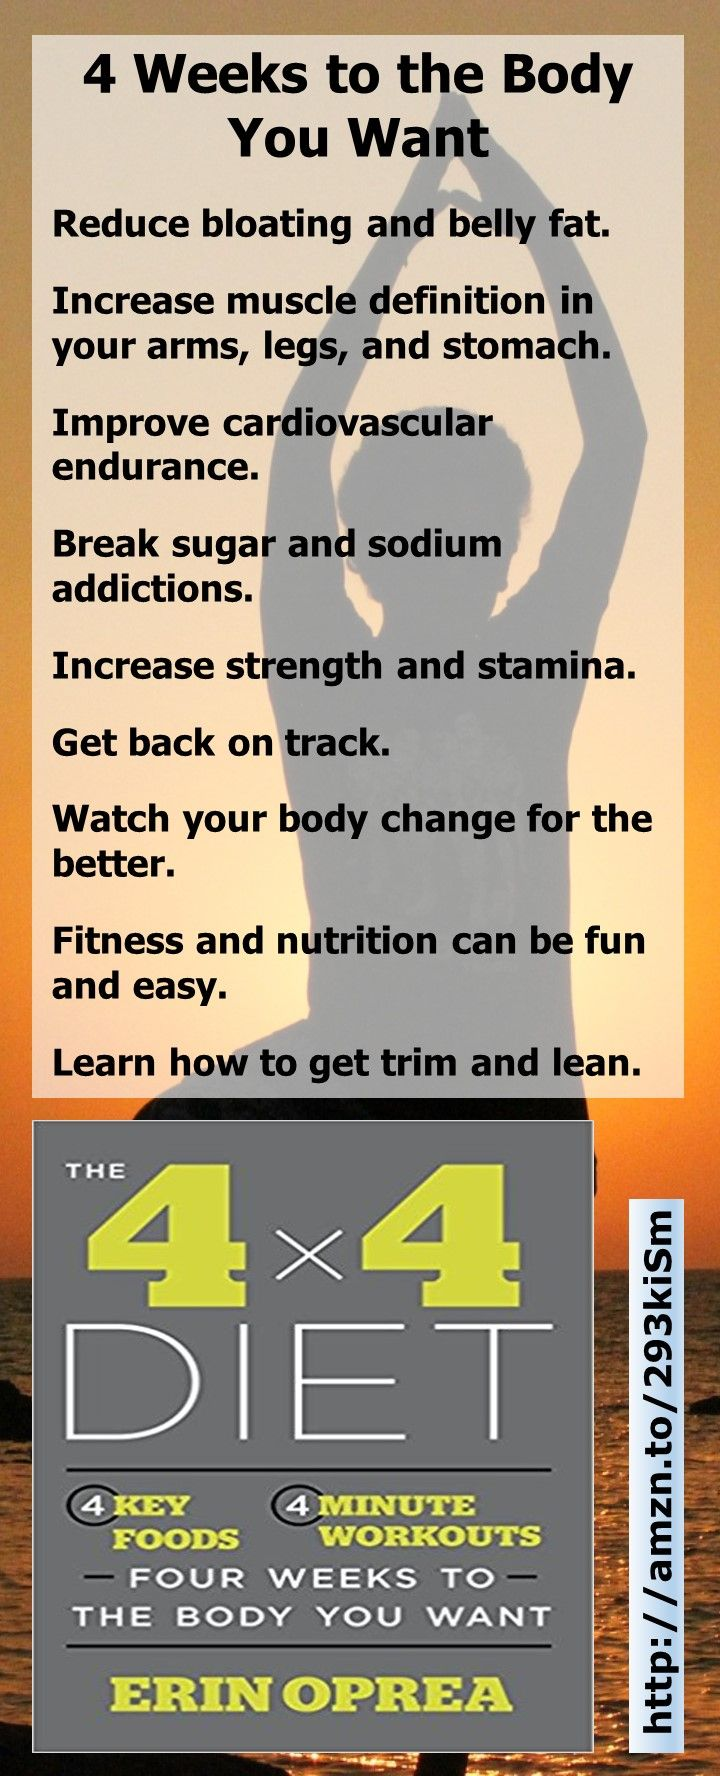 what is the 4 x 4 diet